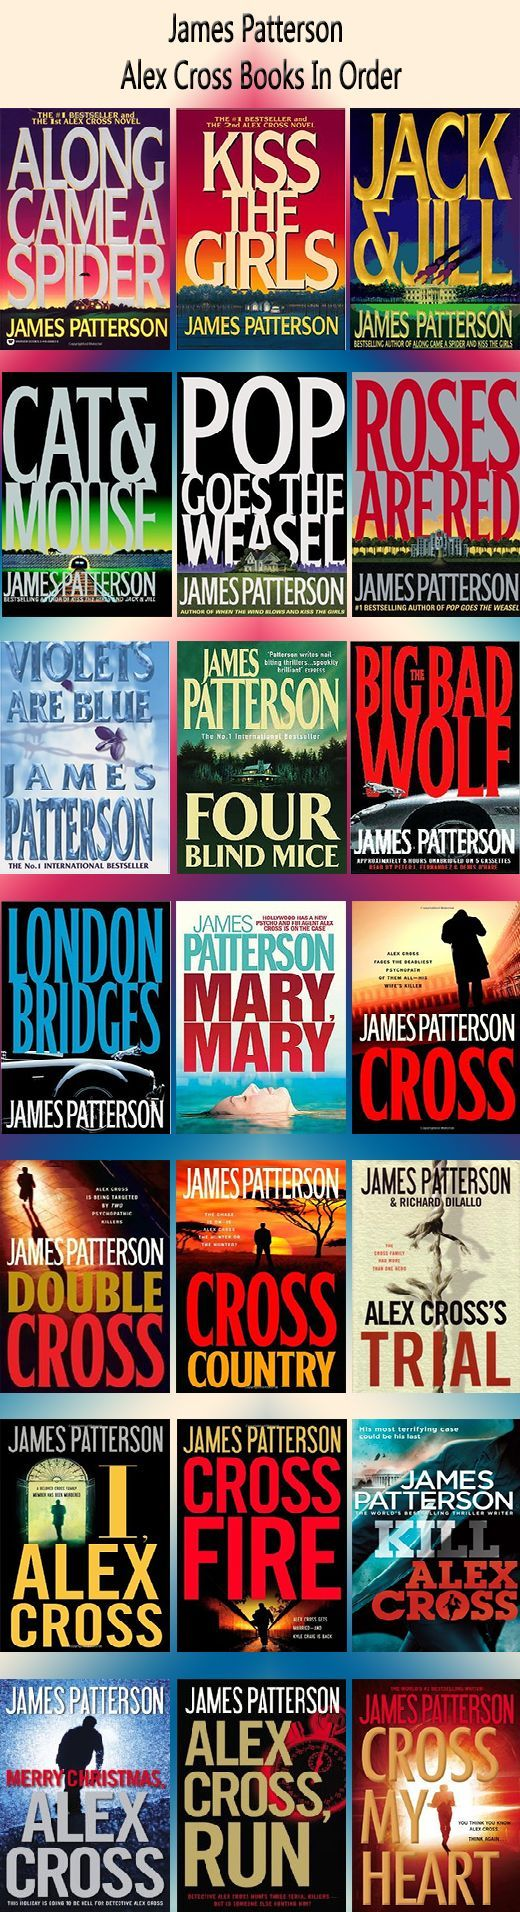 Alex Cross Books In Order By James Patterson Http Mysterysequels Com James Patterson Alex Cross Books In James Patterson James Patterson Books Mystery Books